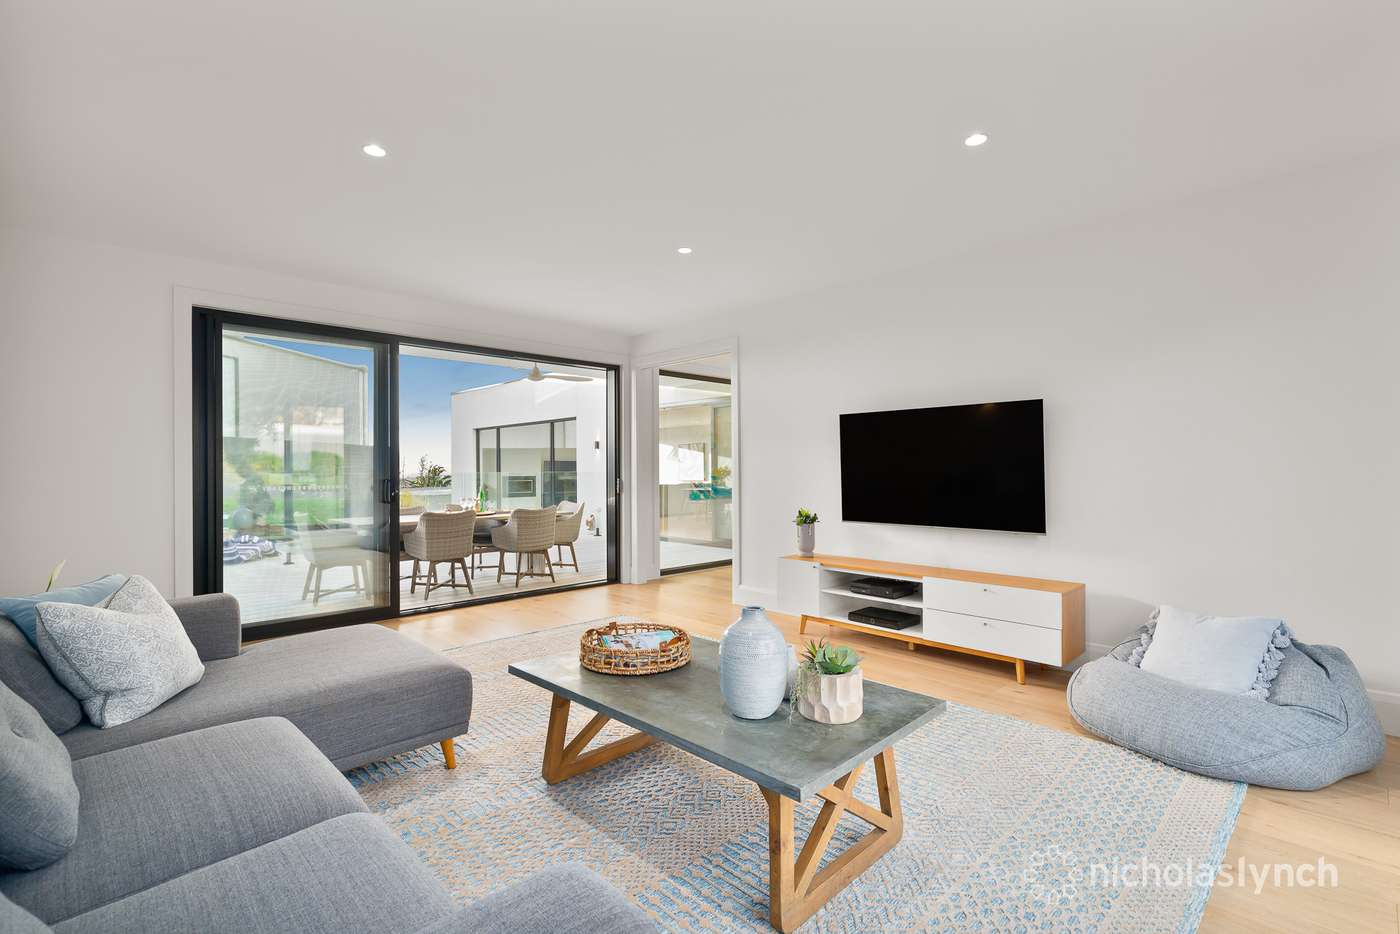 Sixth view of Homely house listing, 1 Koornalla Crescent, Mount Eliza VIC 3930